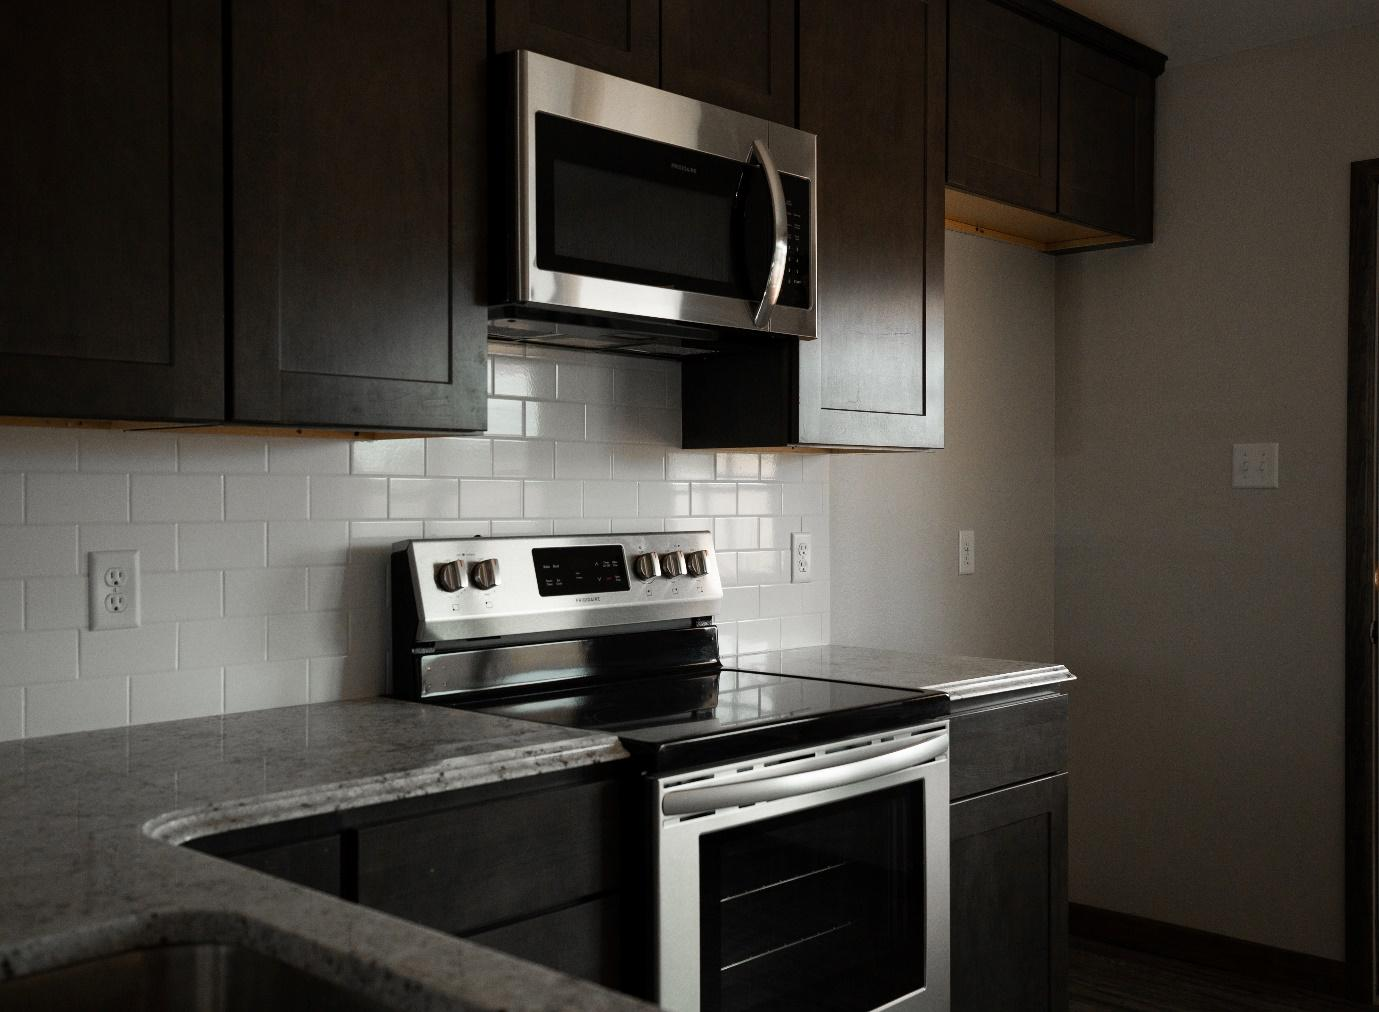 A stove top oven sitting inside of a kitchen  Description automatically generated